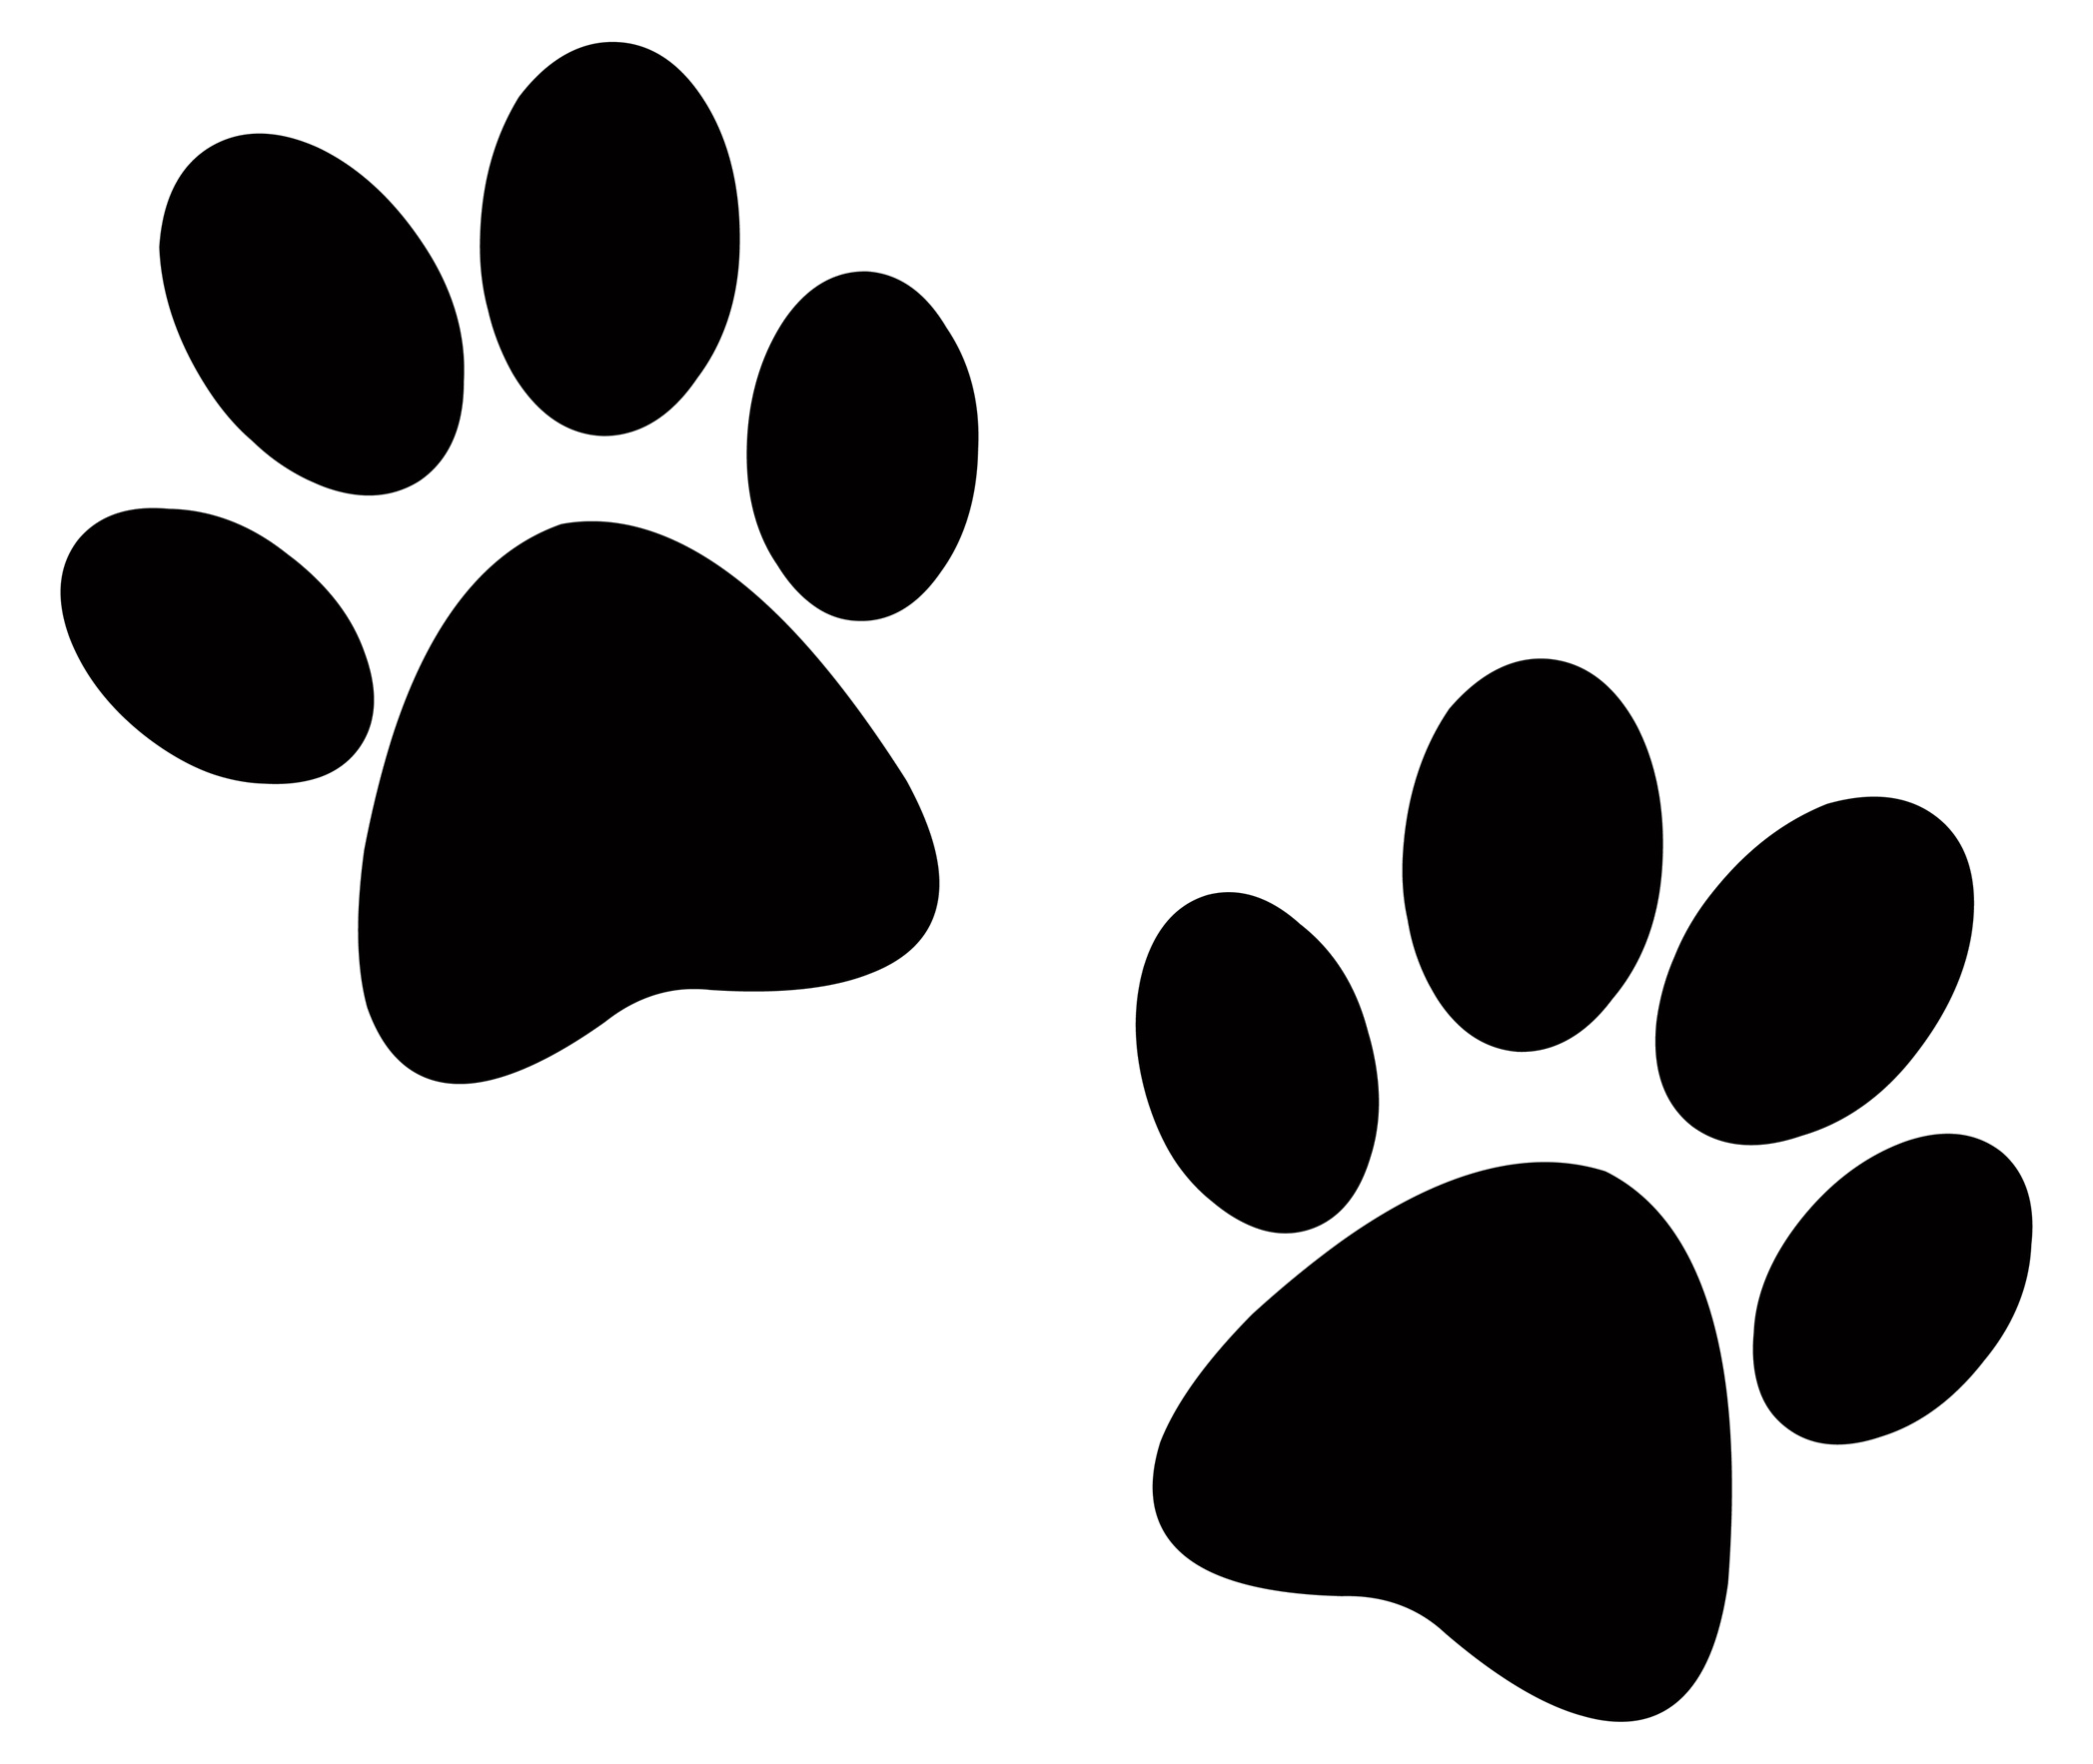 Paw Print Free Dog Clip Art On Clipart Transparent Png.